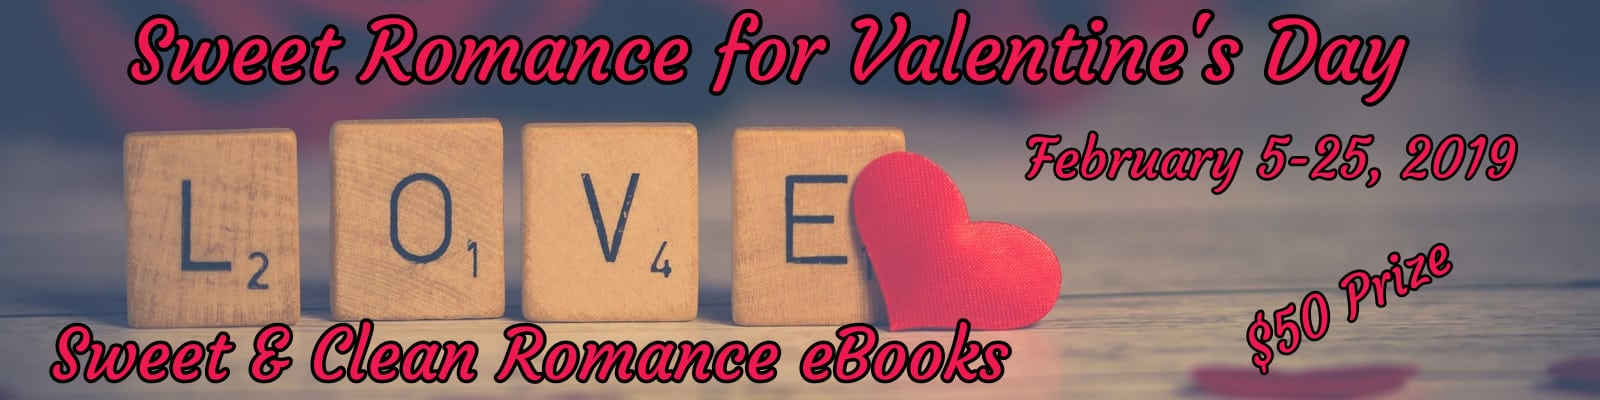 Sweet Romance for Valentine's Day